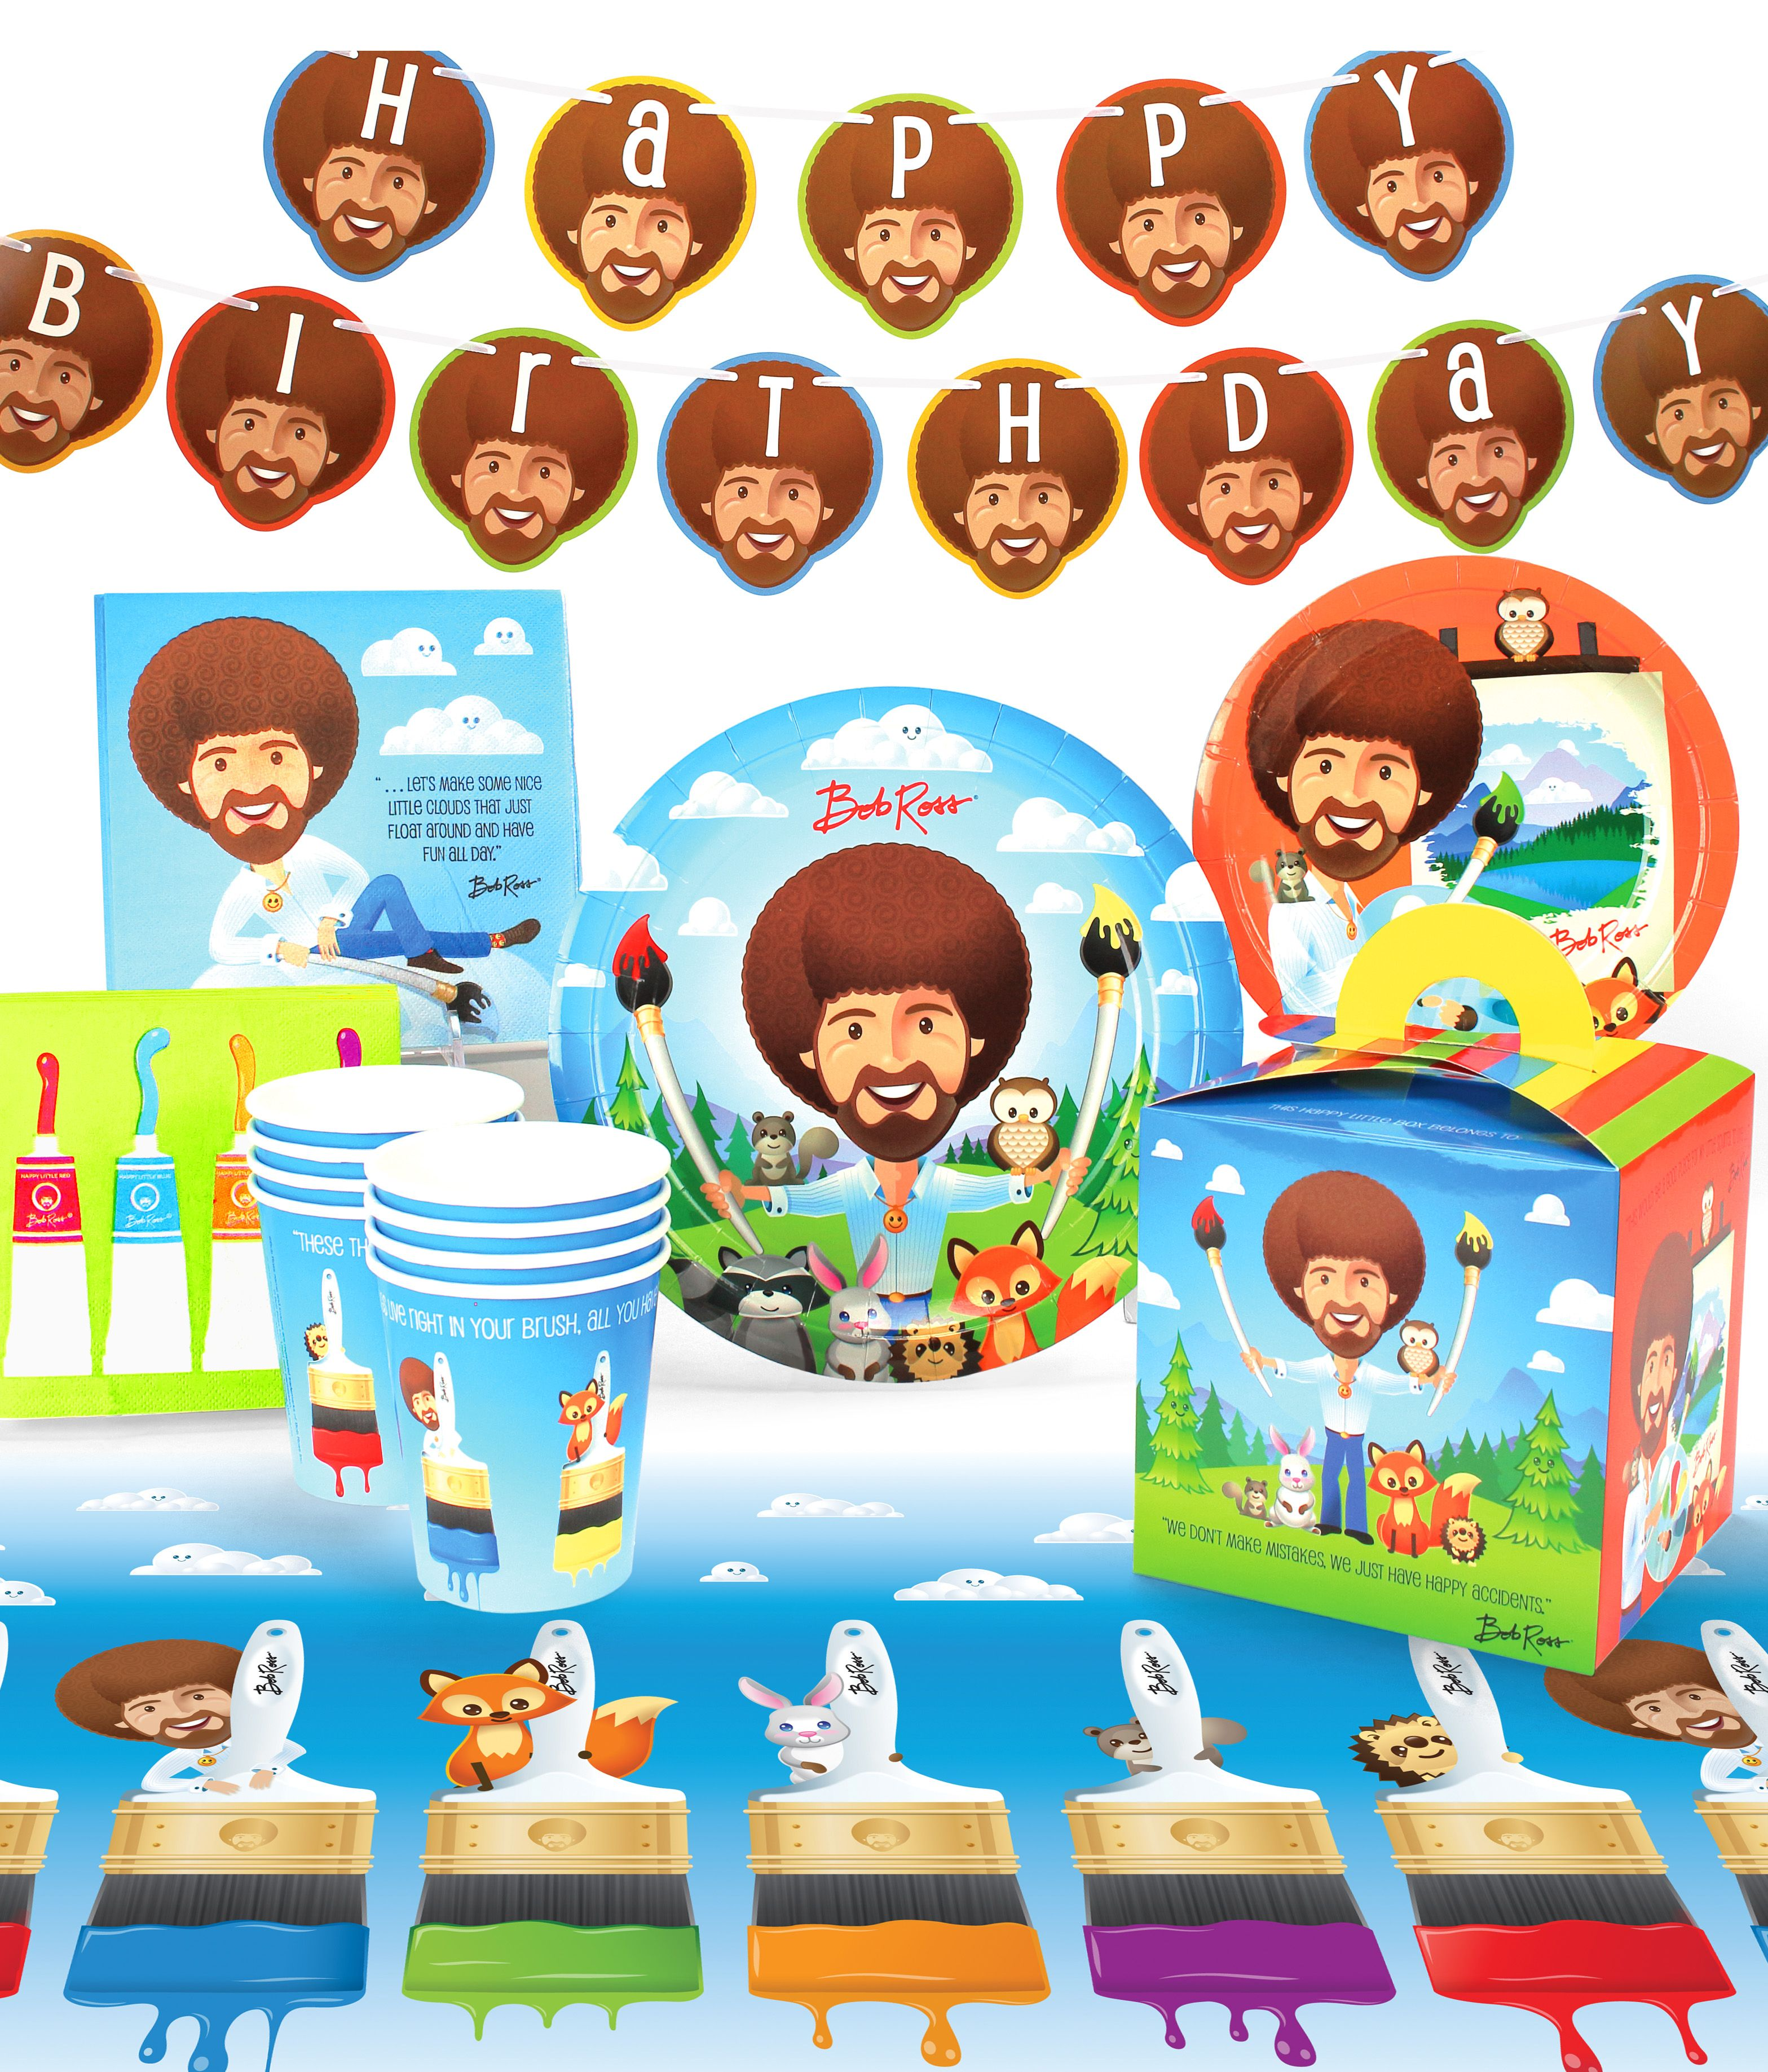 OMB! Bob Ross and Friends, Illustrated Birthday is THE